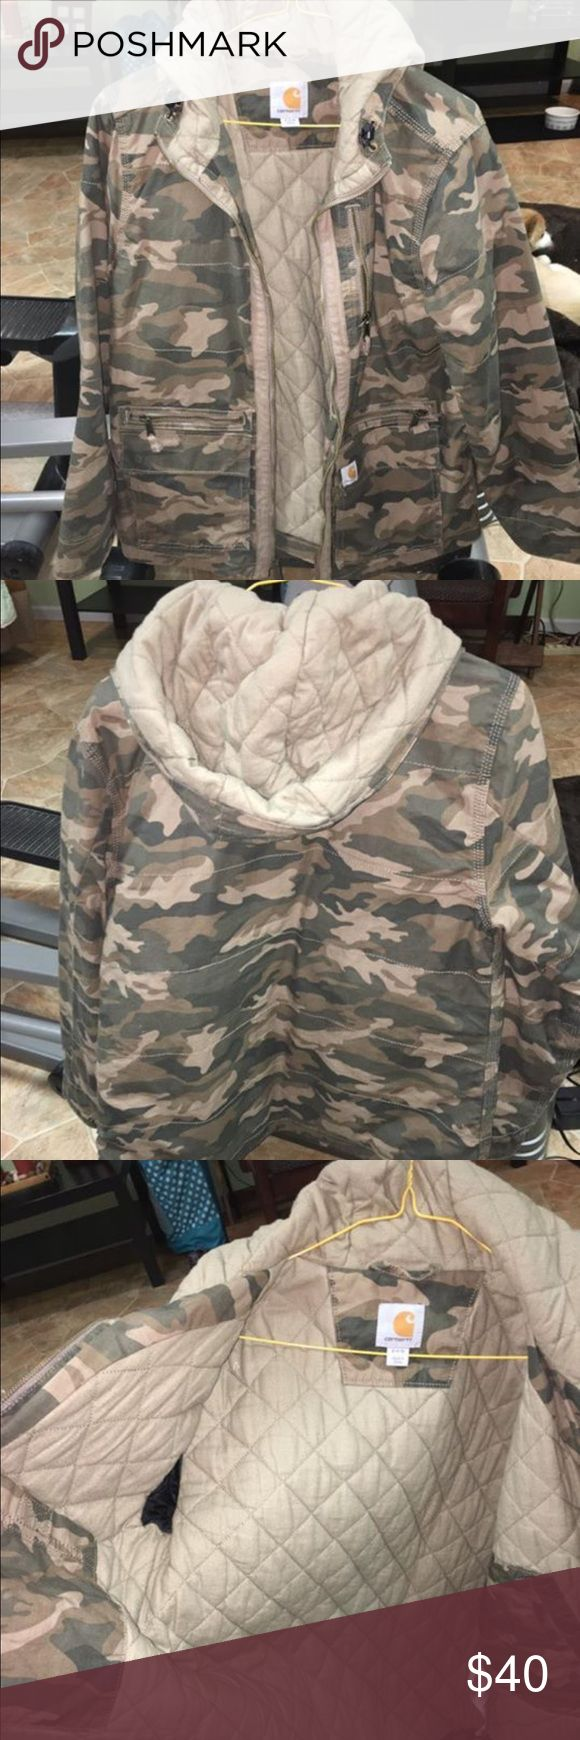 Carhartt women's winter jacket Worn only a few times. Warm!  No flaws, stains, rips. Carhartt Jackets & Coats